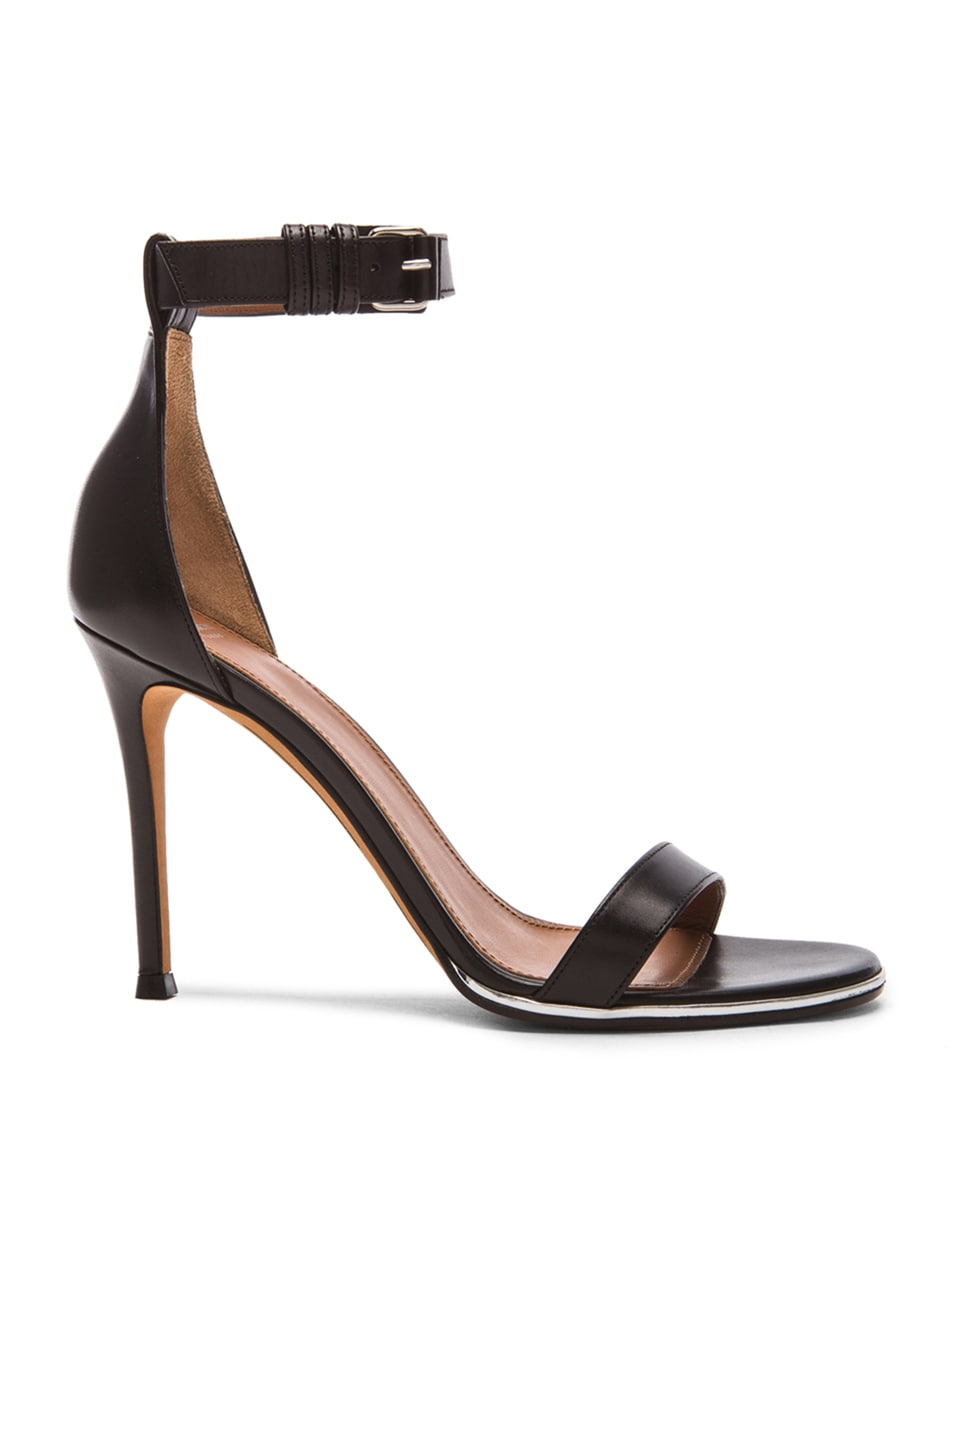 Image 1 of GIVENCHY Nadia Leather Heels in Black